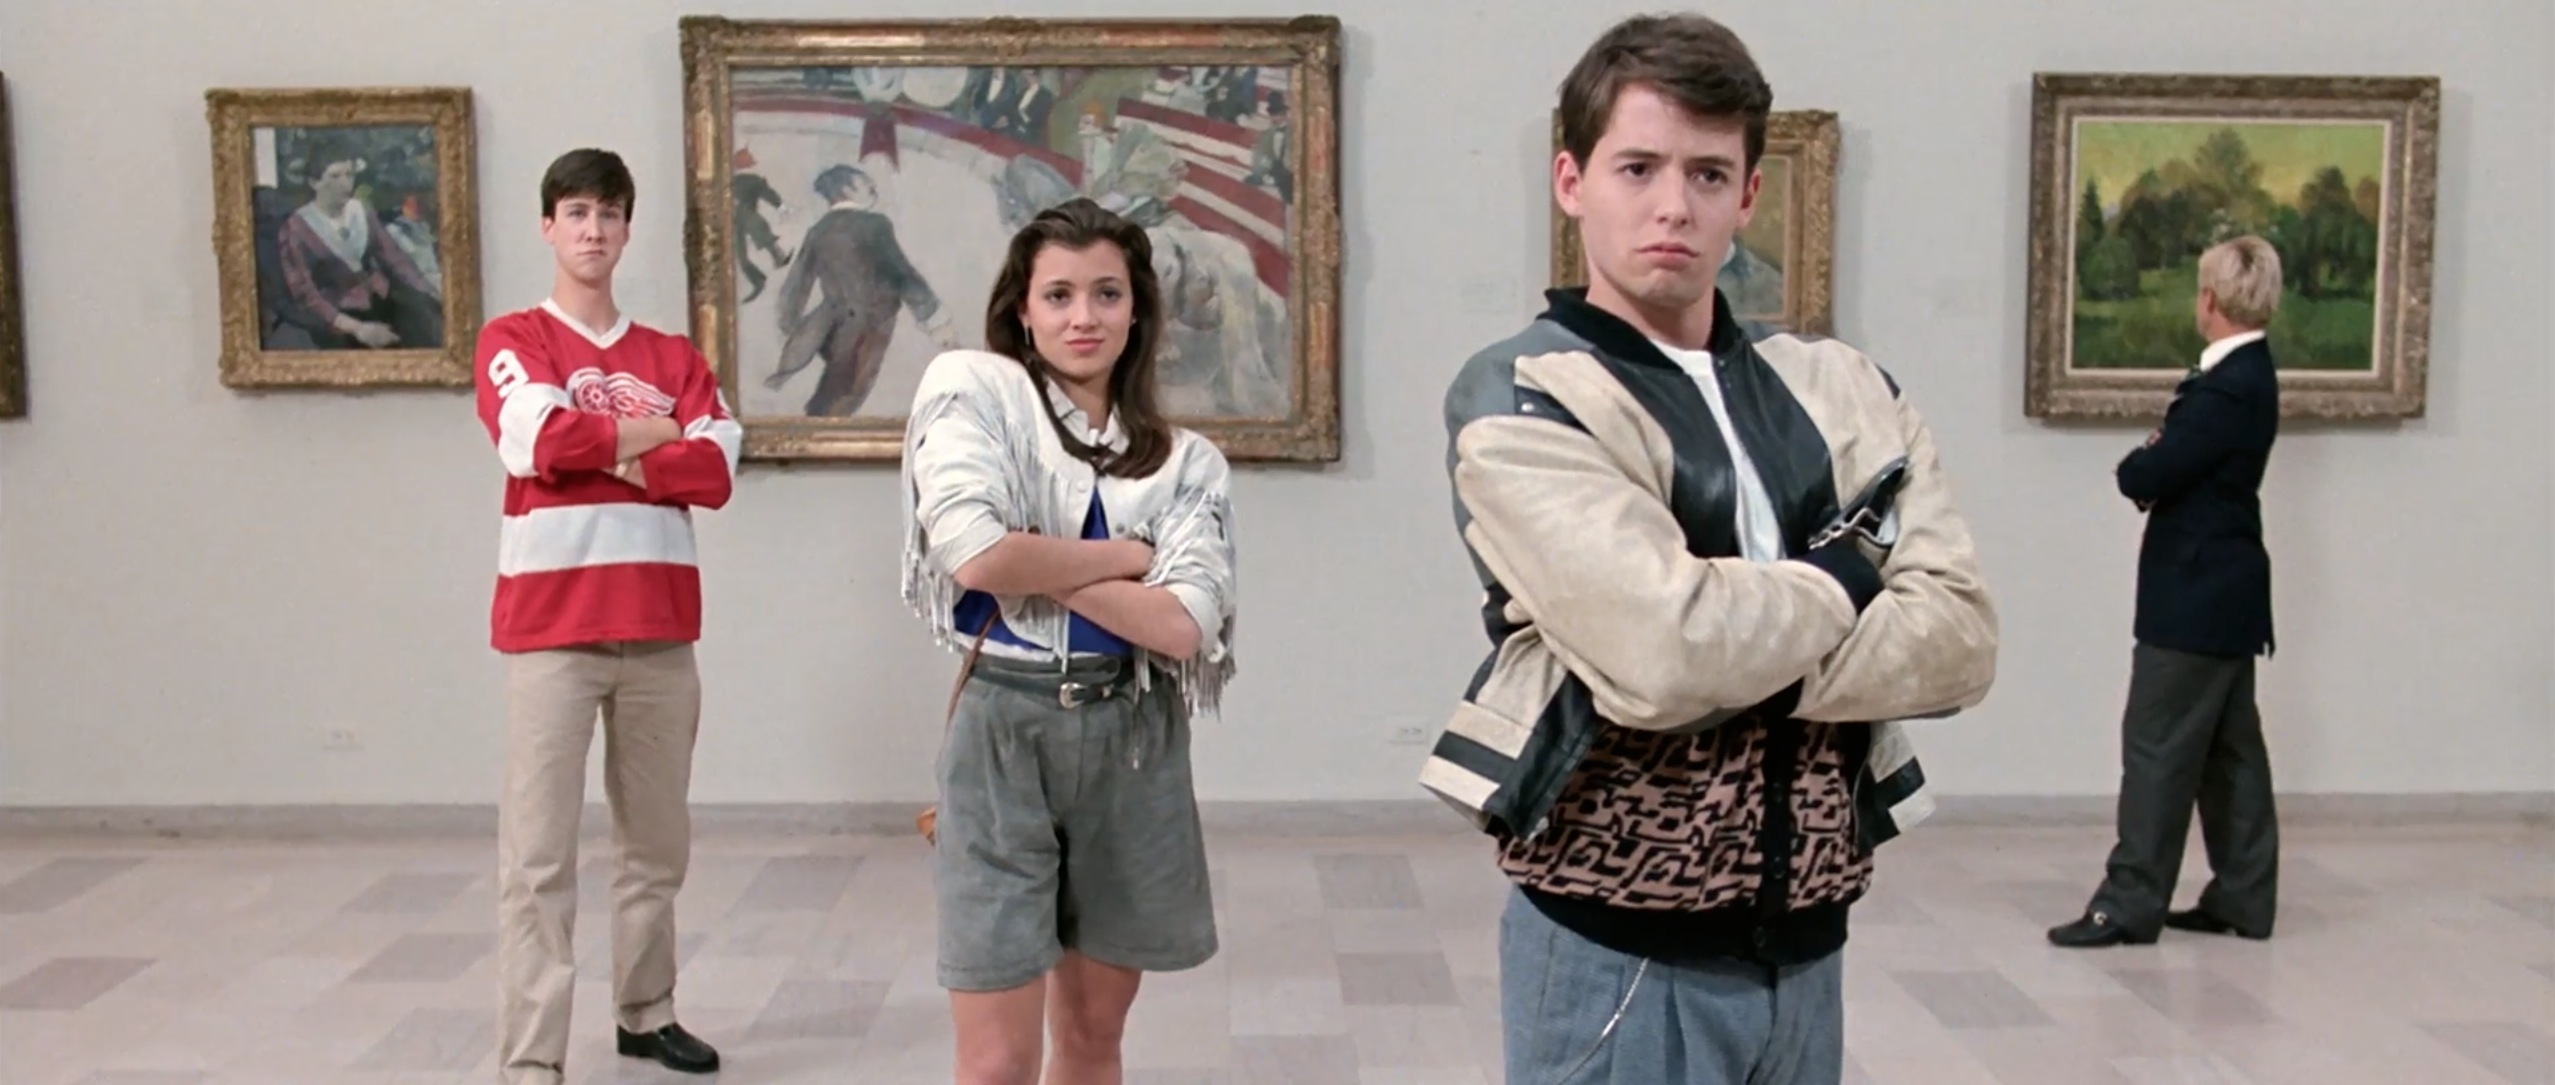 Ferris Buellers Day Off wallpapers 2555x1085